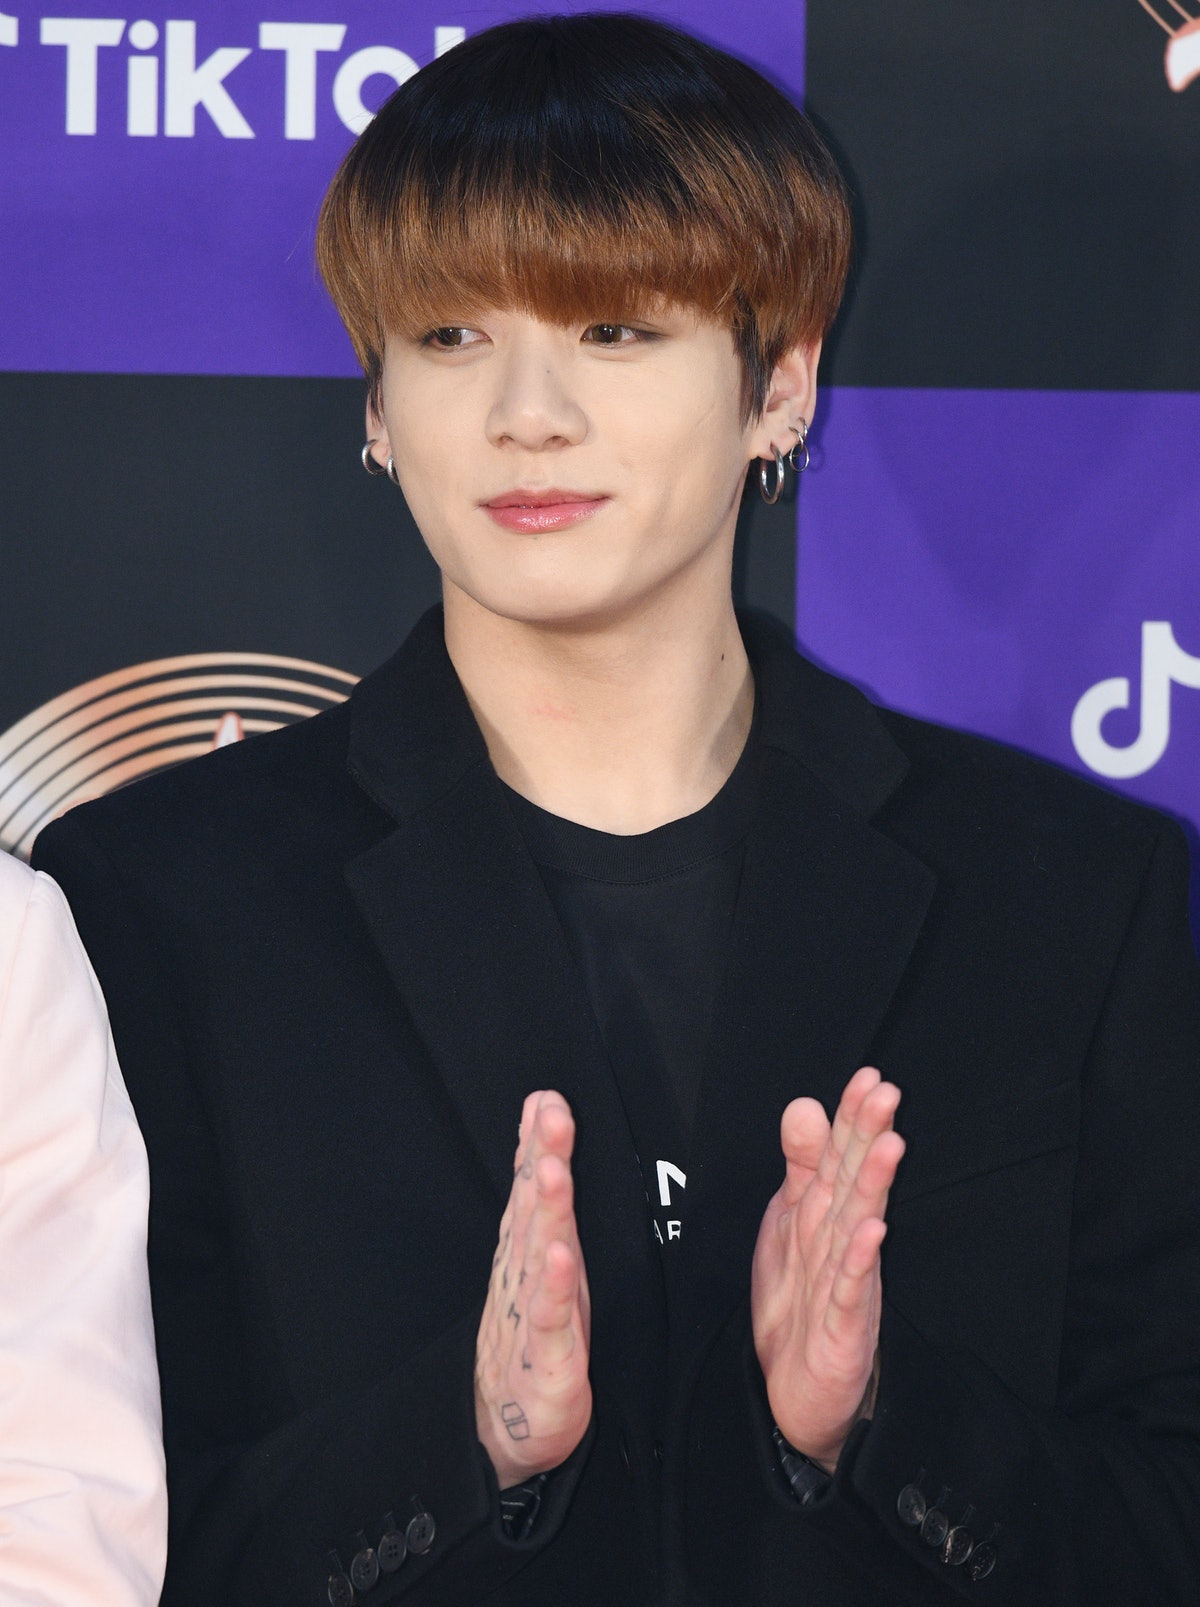 BTS' Jungkook's 2020 mixtape has been a long time coming, but fans think this year might be the year...